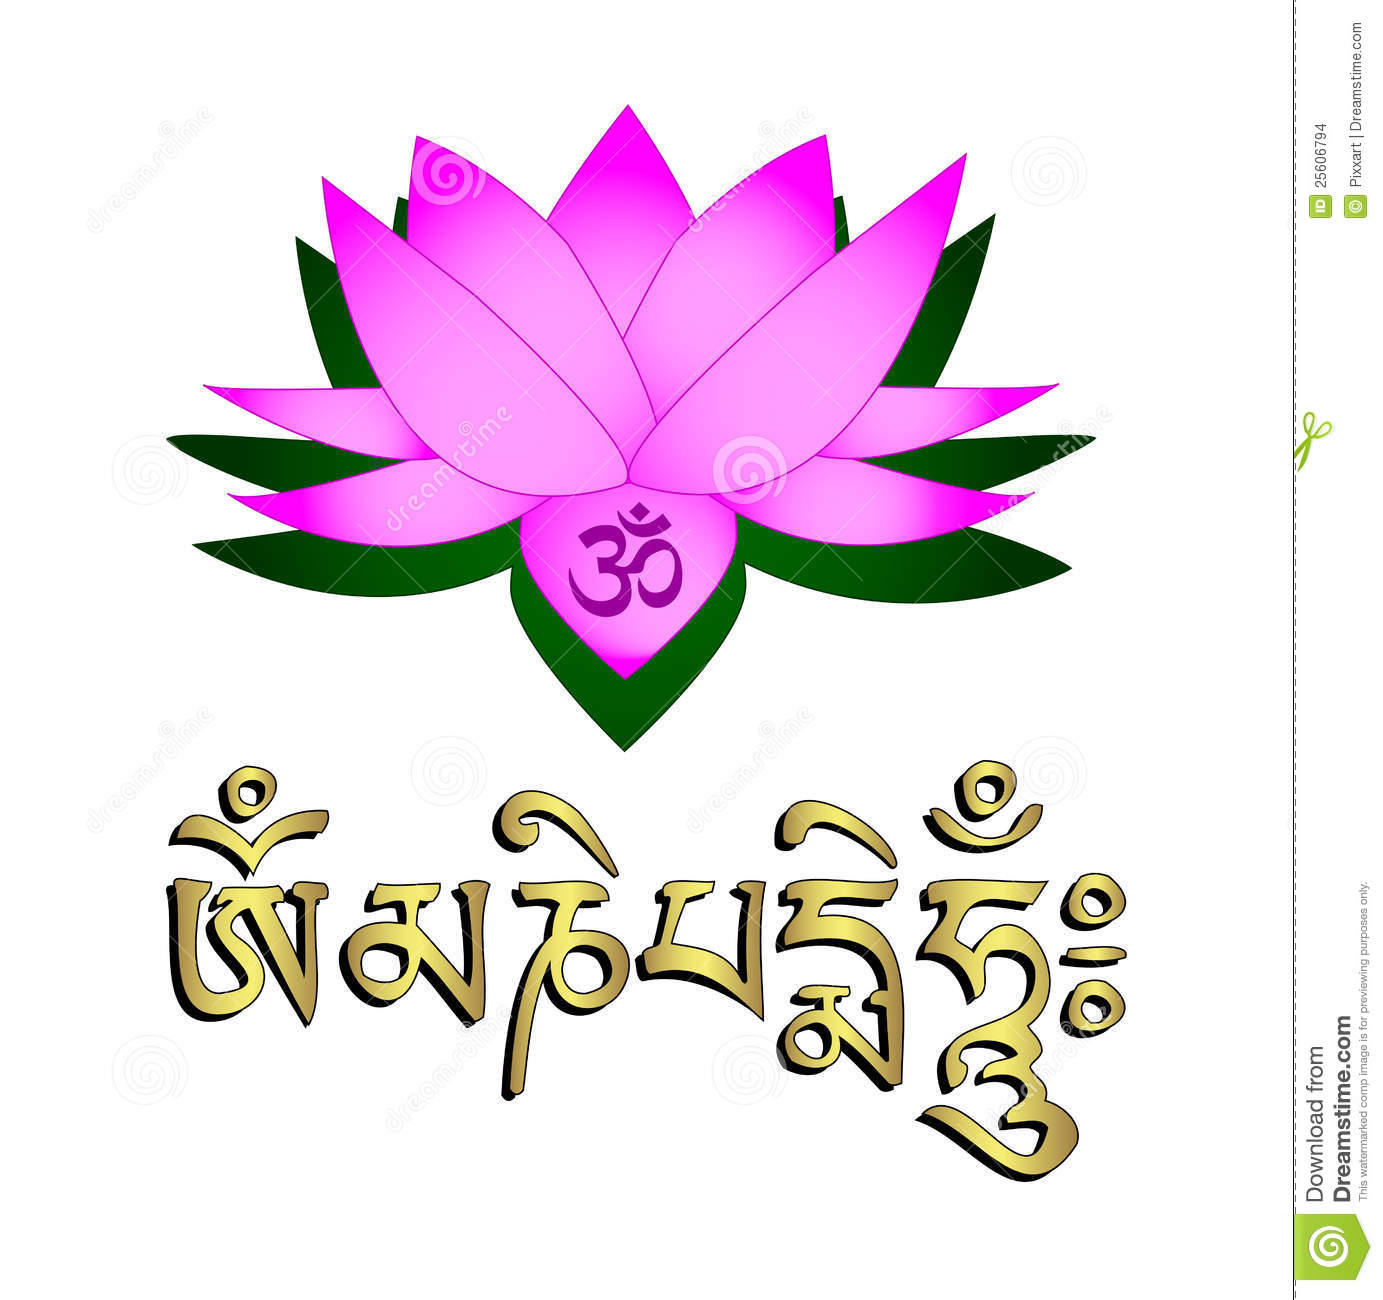 Fleur de lotus symbole de l 39 om et incantation illustration de vecteur illustration du - Fleur de lotus symbole ...